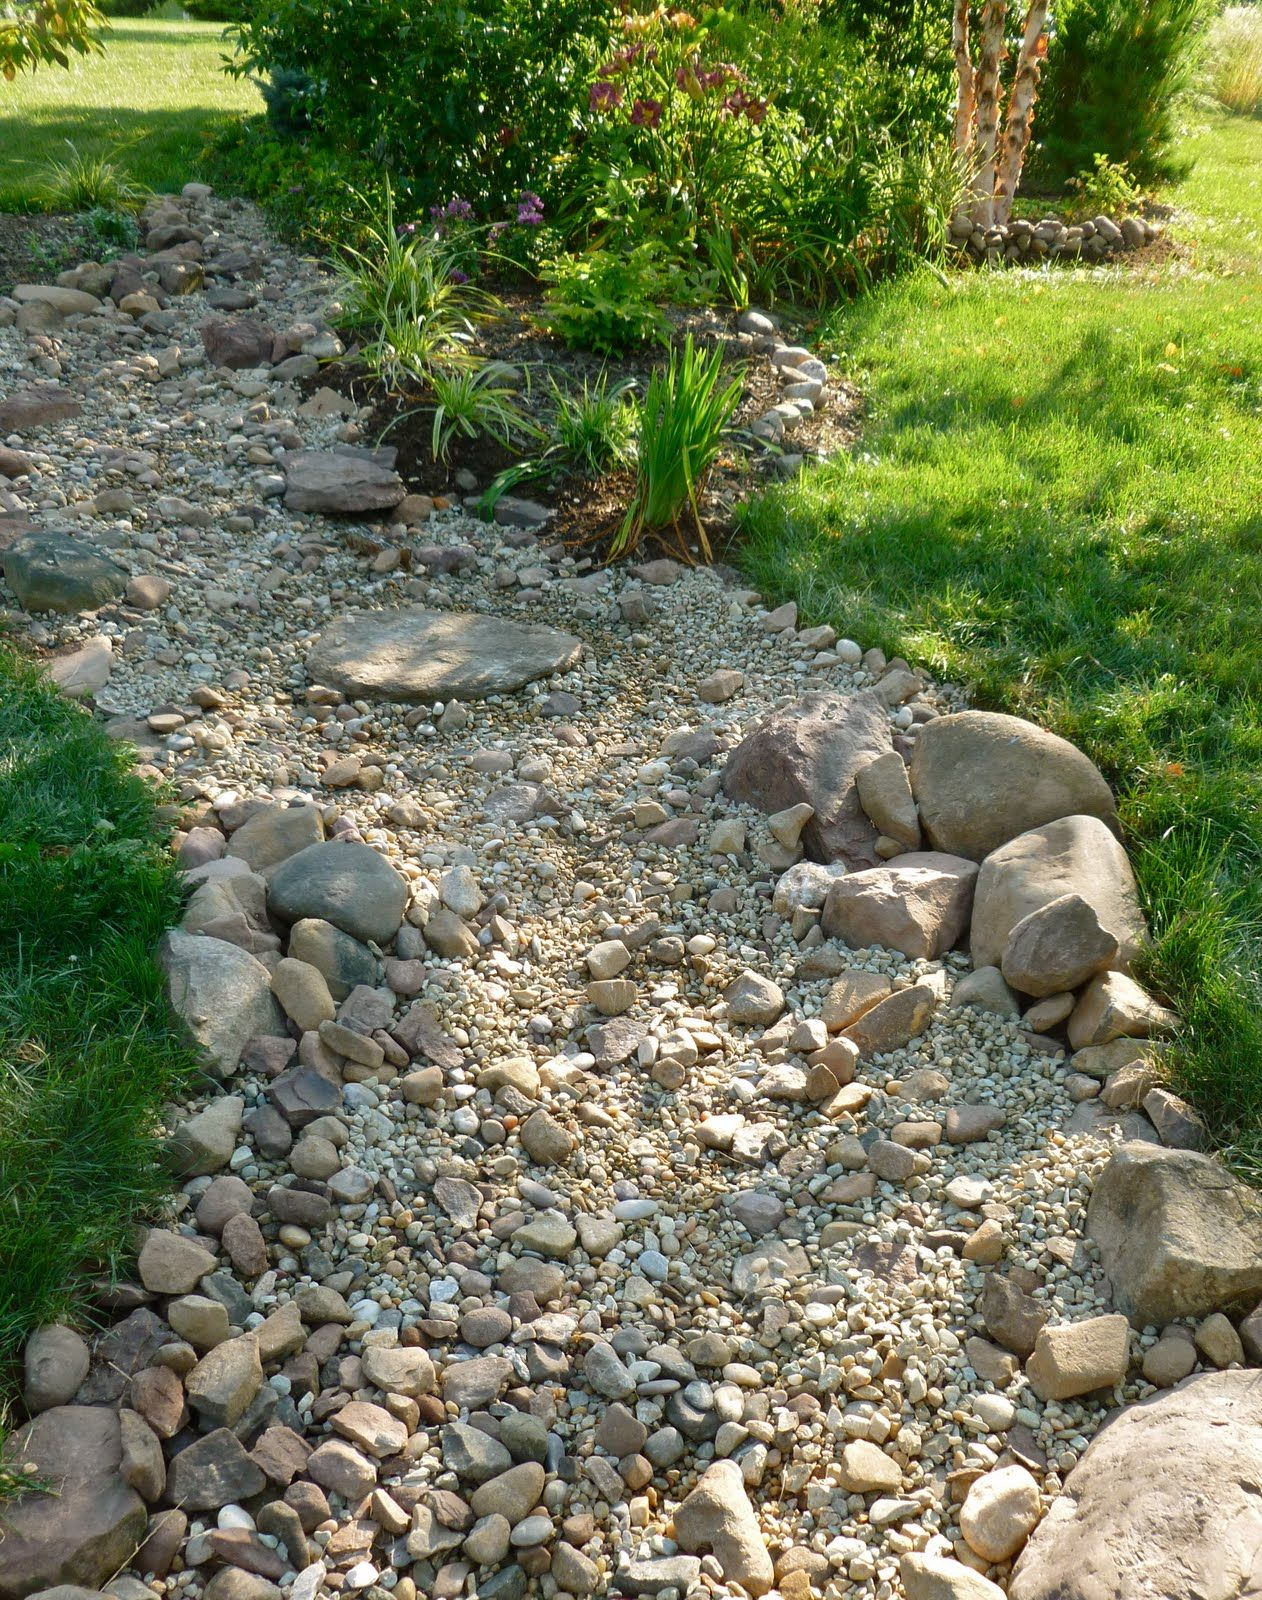 Dry rock bed. Keep edges random. Use contrasting sized